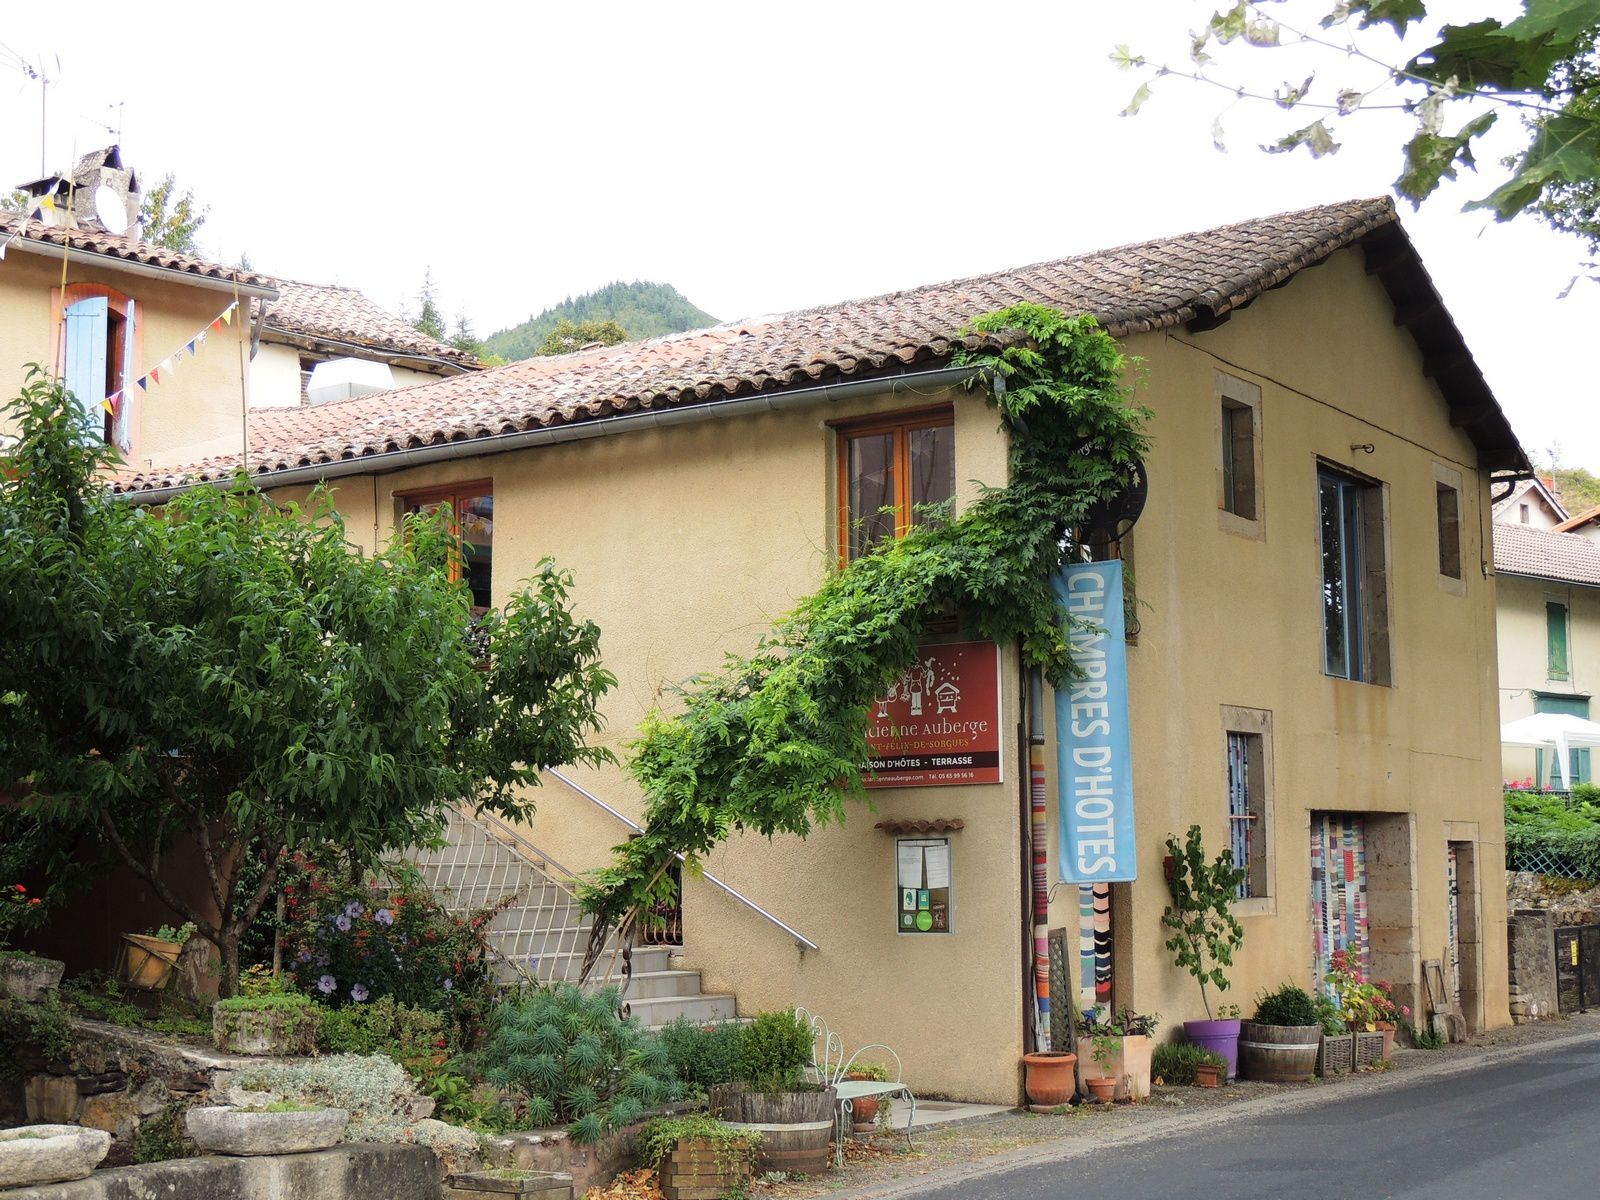 l'Aveyron - a little holiday